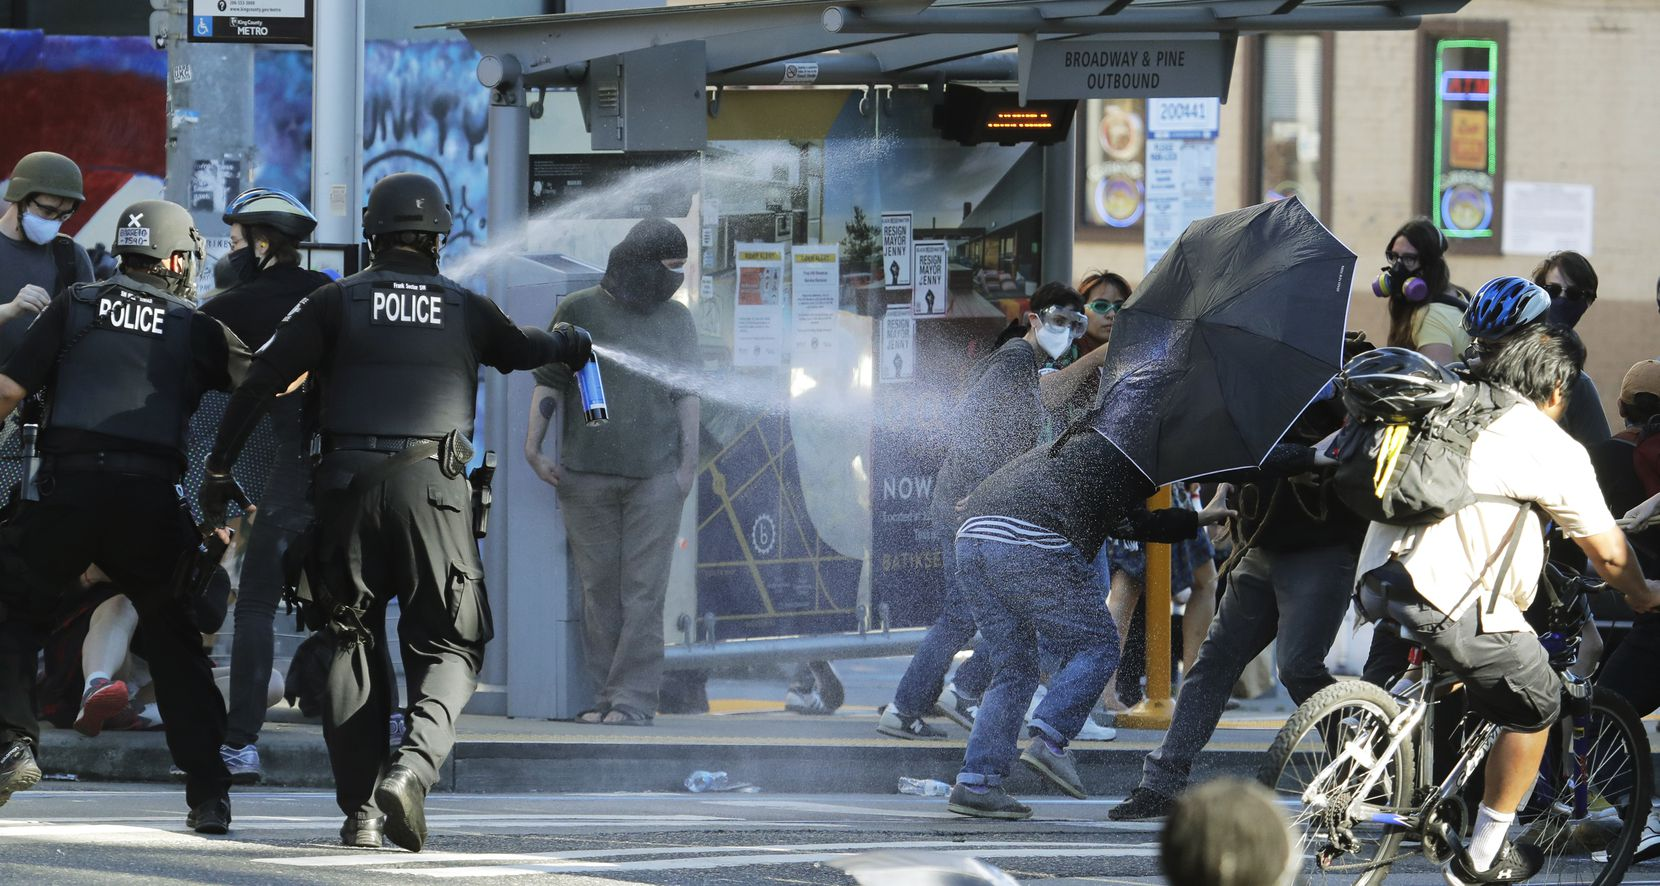 Police in Seattle pepper spray protesters July 25, 2020, near Seattle Central College during a march and protest in support of Black Lives Matter. The Office of Police Accountability said Oct. 23 that excessive force was used.